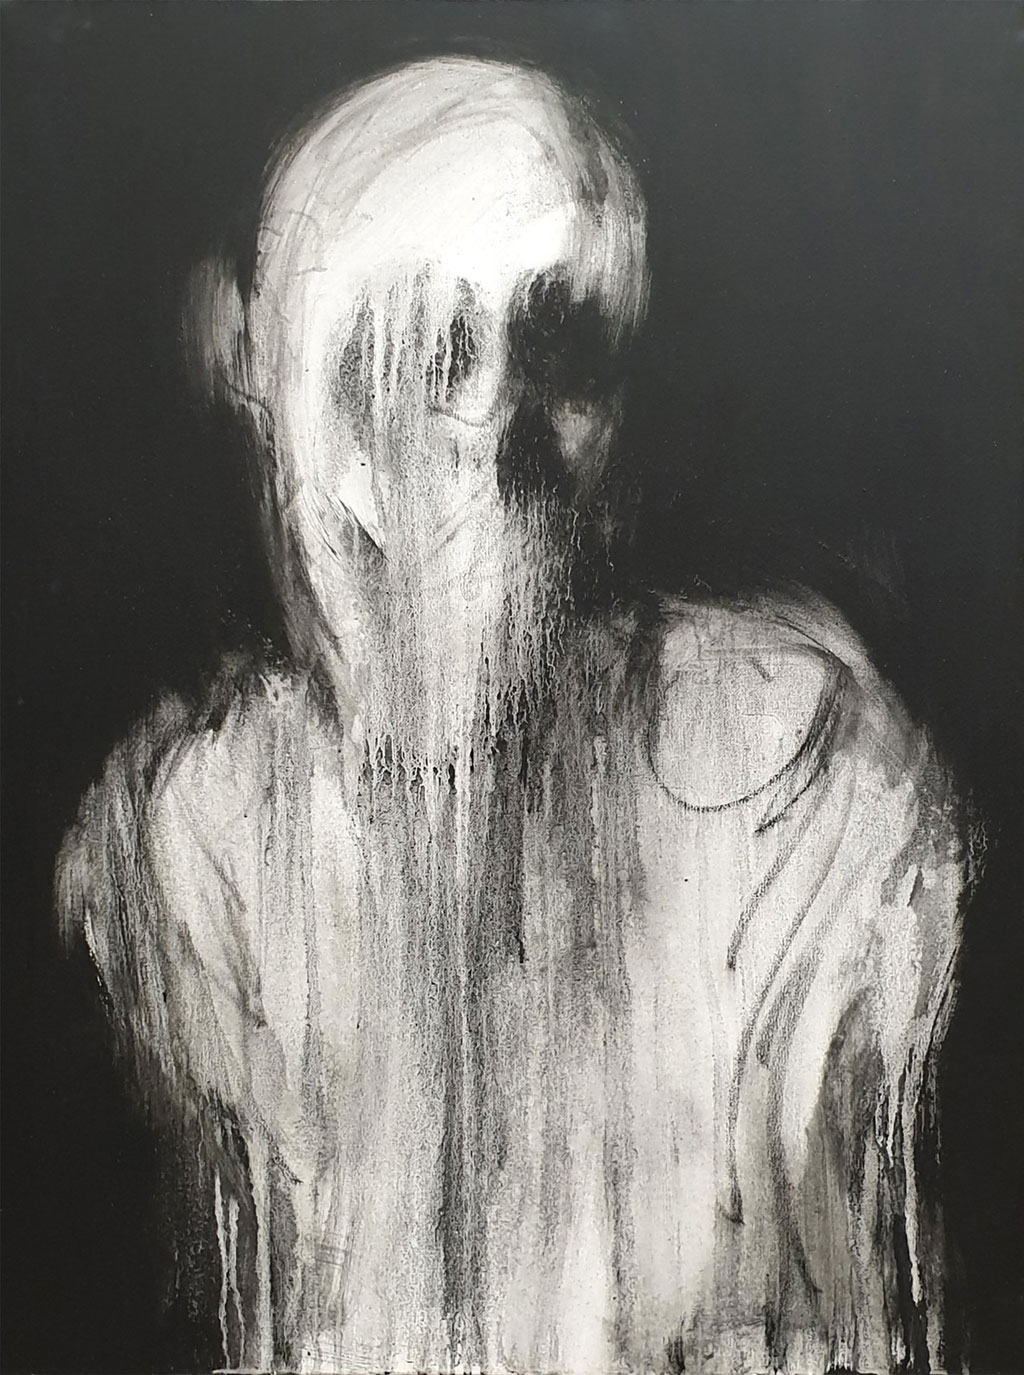 Acrylic painting of a silhouette of a man with the face seemingly melting down the page